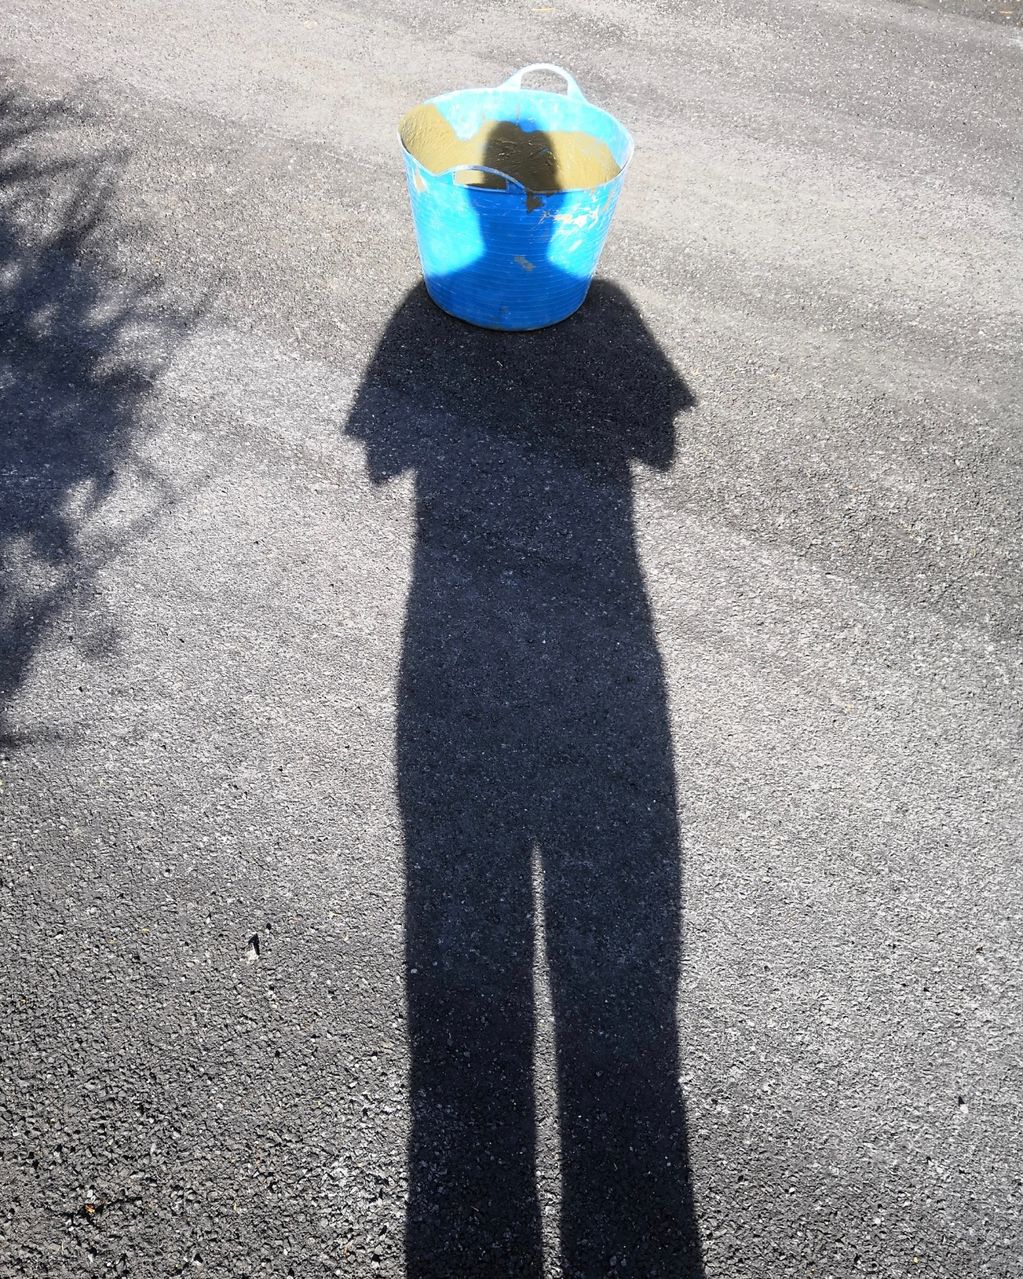 Self Portrait with Blue Bucket Filled with Concrete 2018